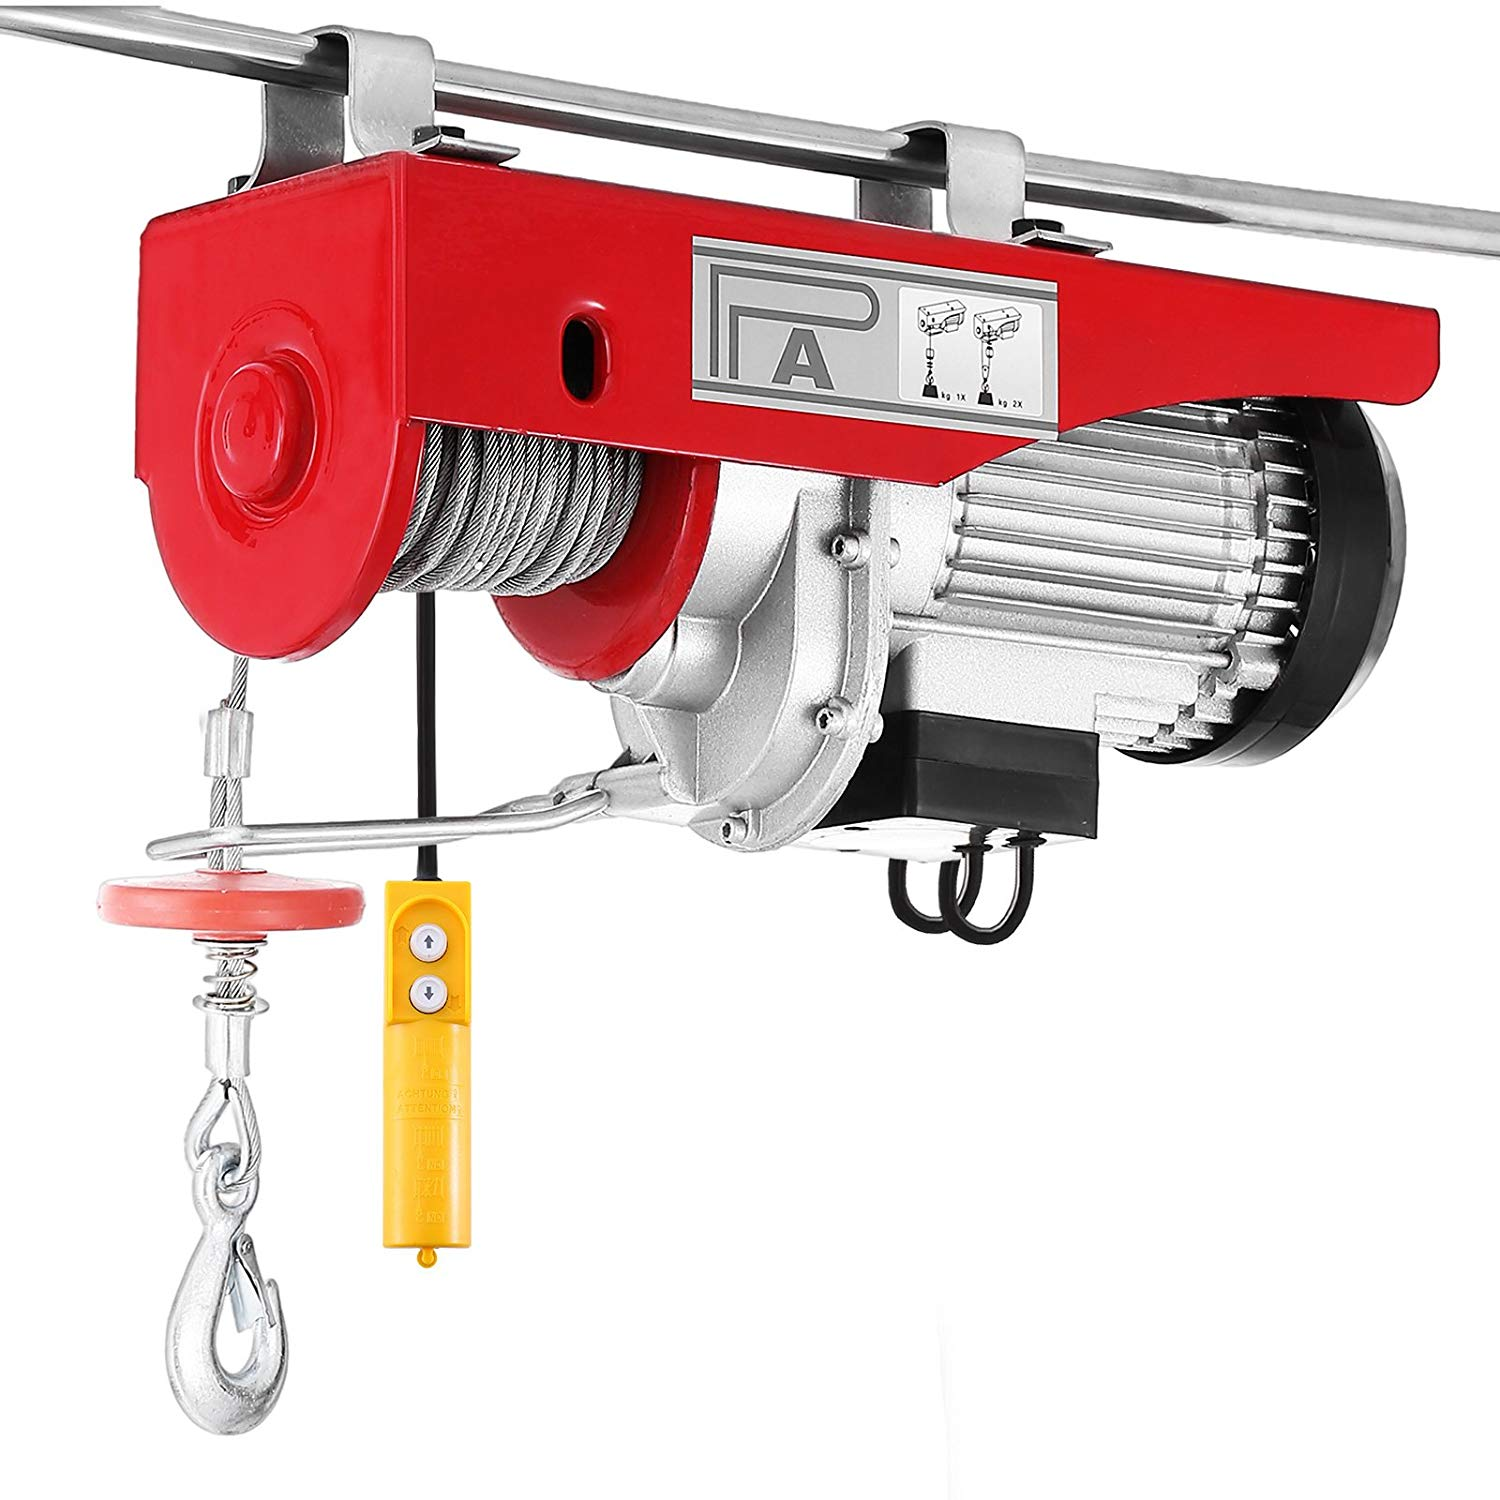 Garage Auto 95 Bestequip Electric Hoist Lift 1320lbs 600kg Overhead Electric Hoist 110v Electric Wire Hoist Remote Control Garage Auto Shop Overhead Lift